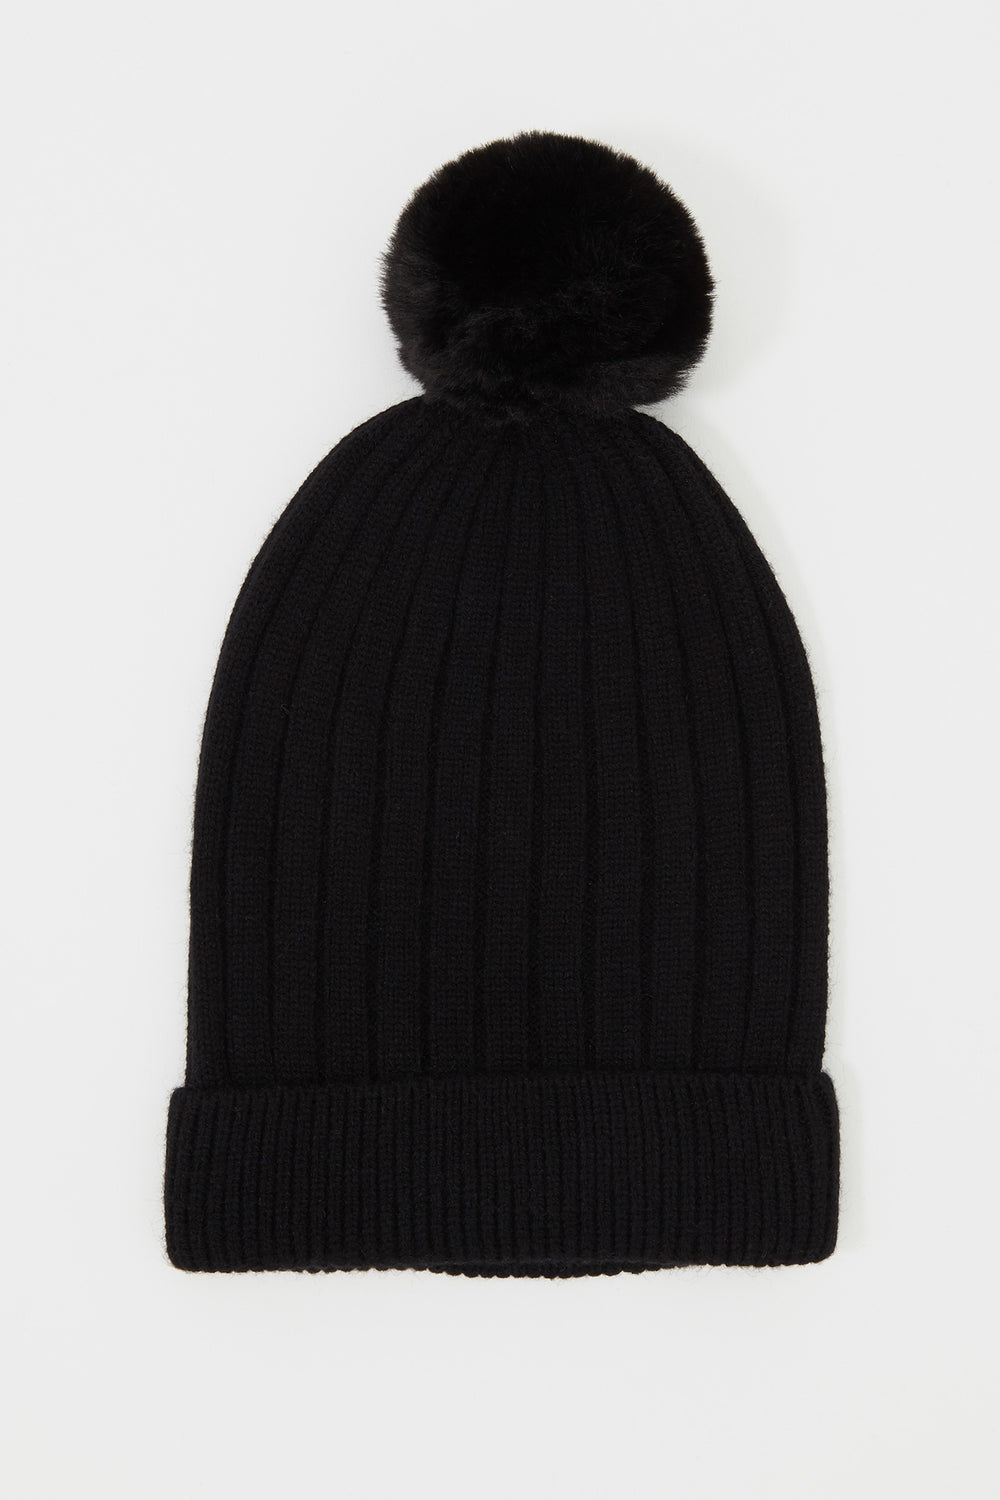 Ribbed Pom Pom Beanie Black